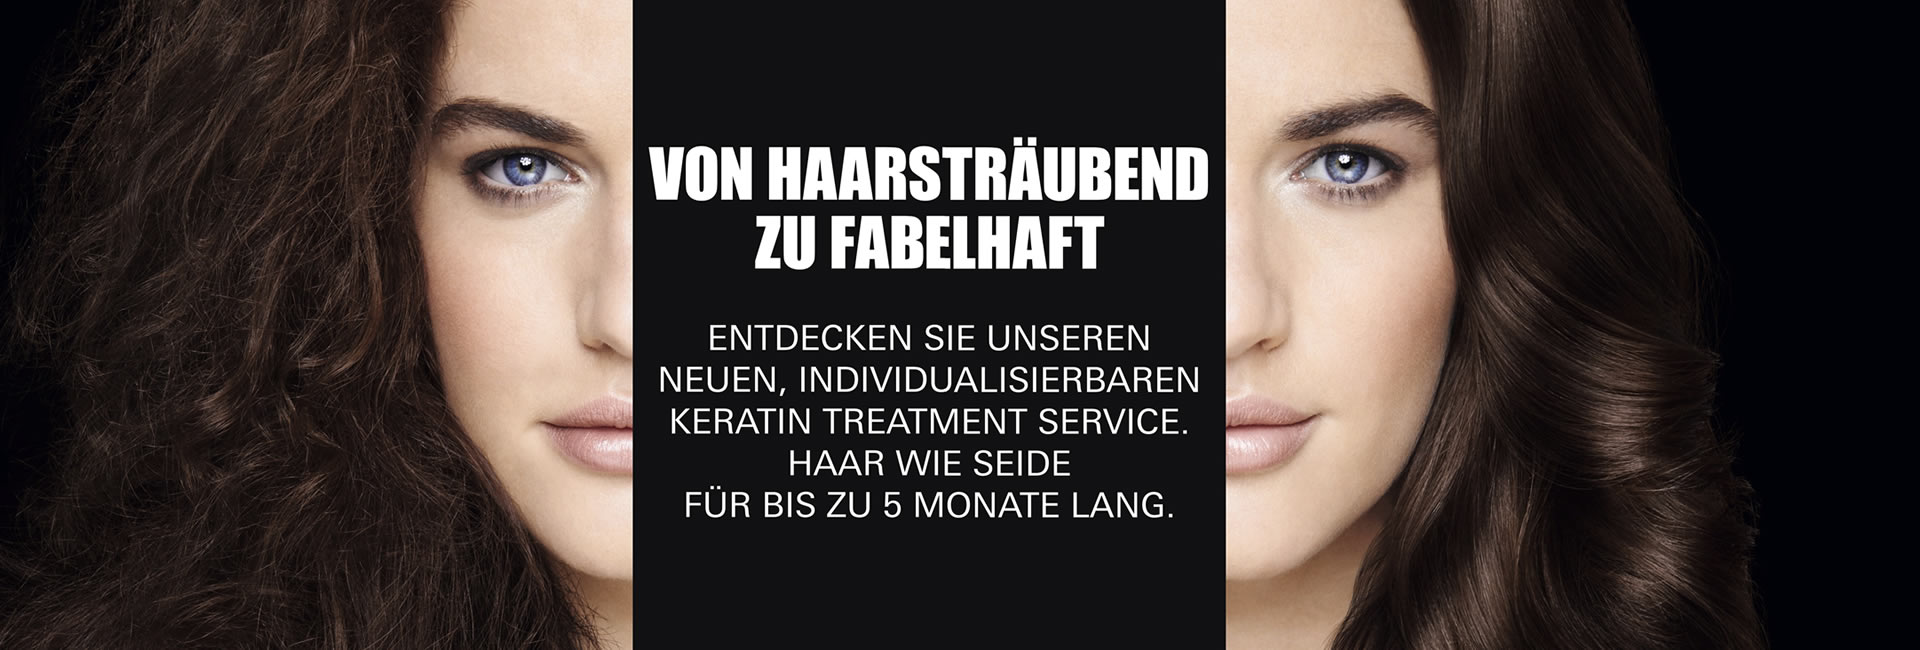 Intercoiffure Berlin - Hermsdorf - Kerasilk Keratin Treatment